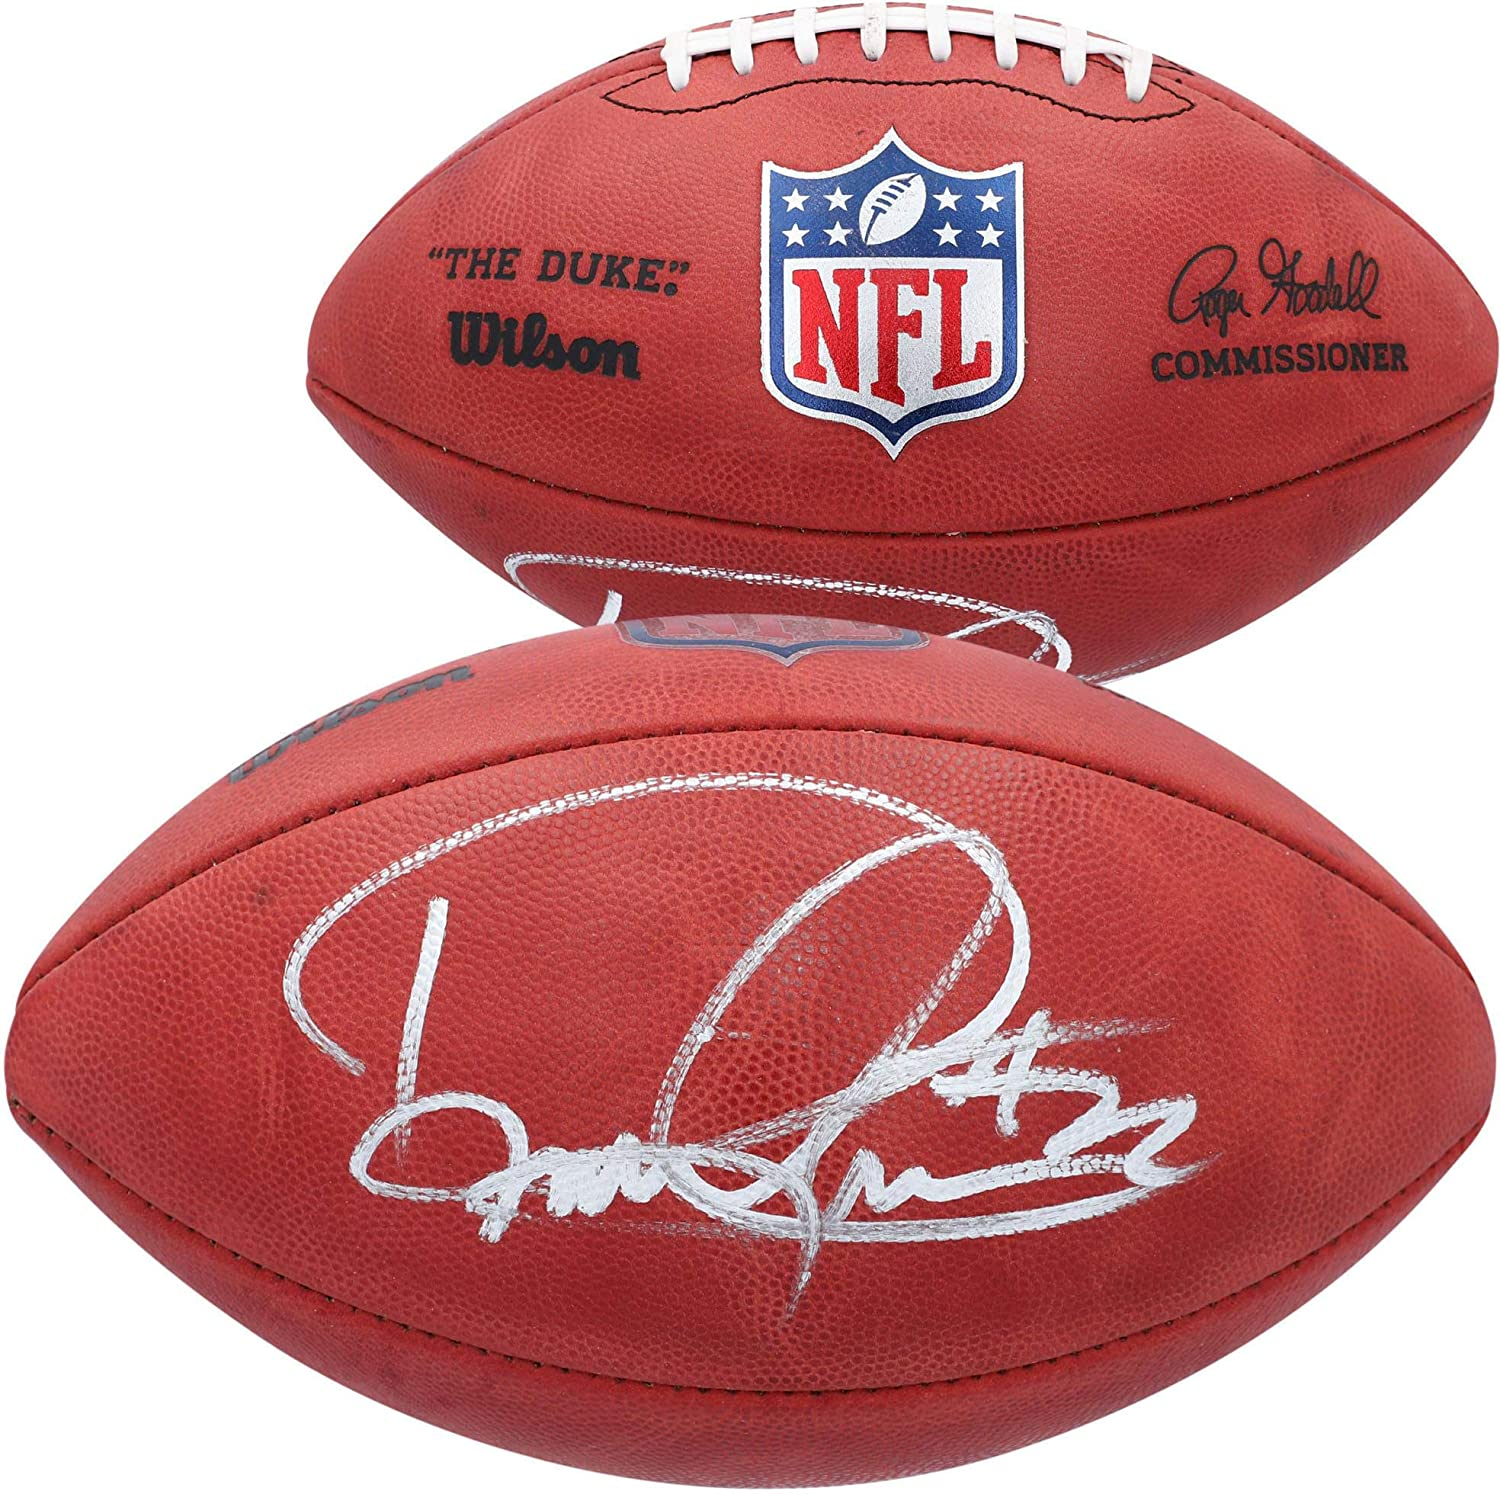 Derrick Henry Tennessee Titans Autographed Duke Game Football - Autographed Footballs